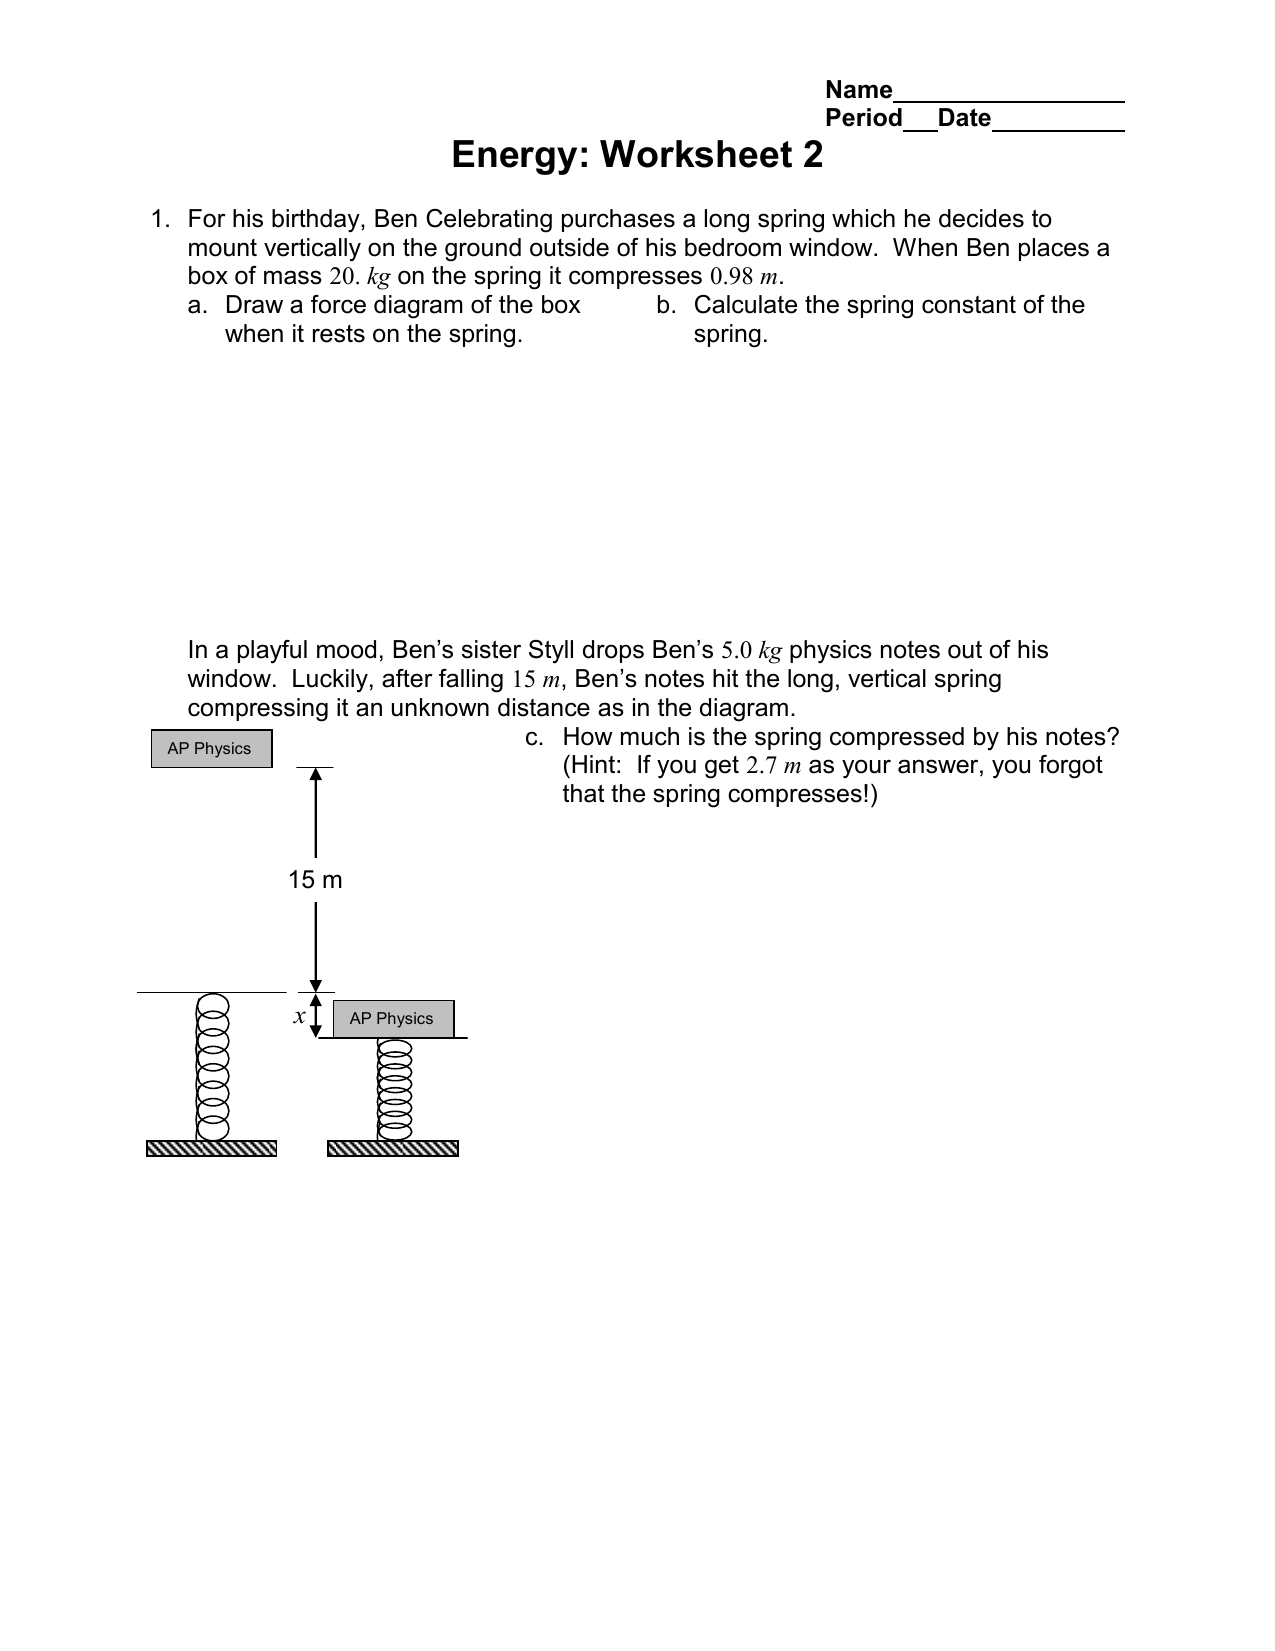 Energy: Worksheet 2